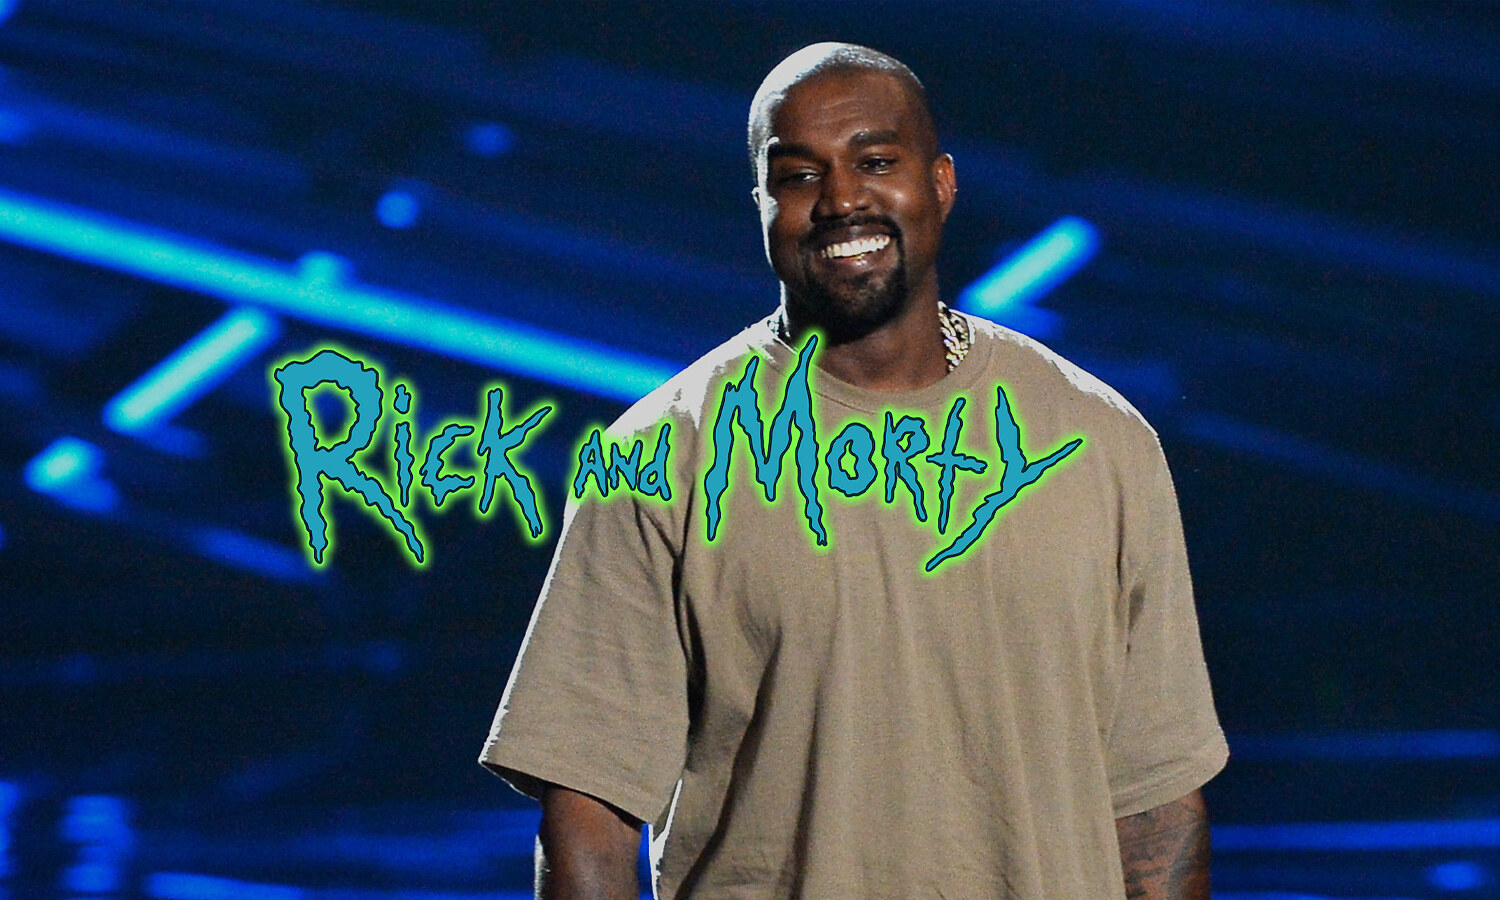 Rick and Morty x Kanye West